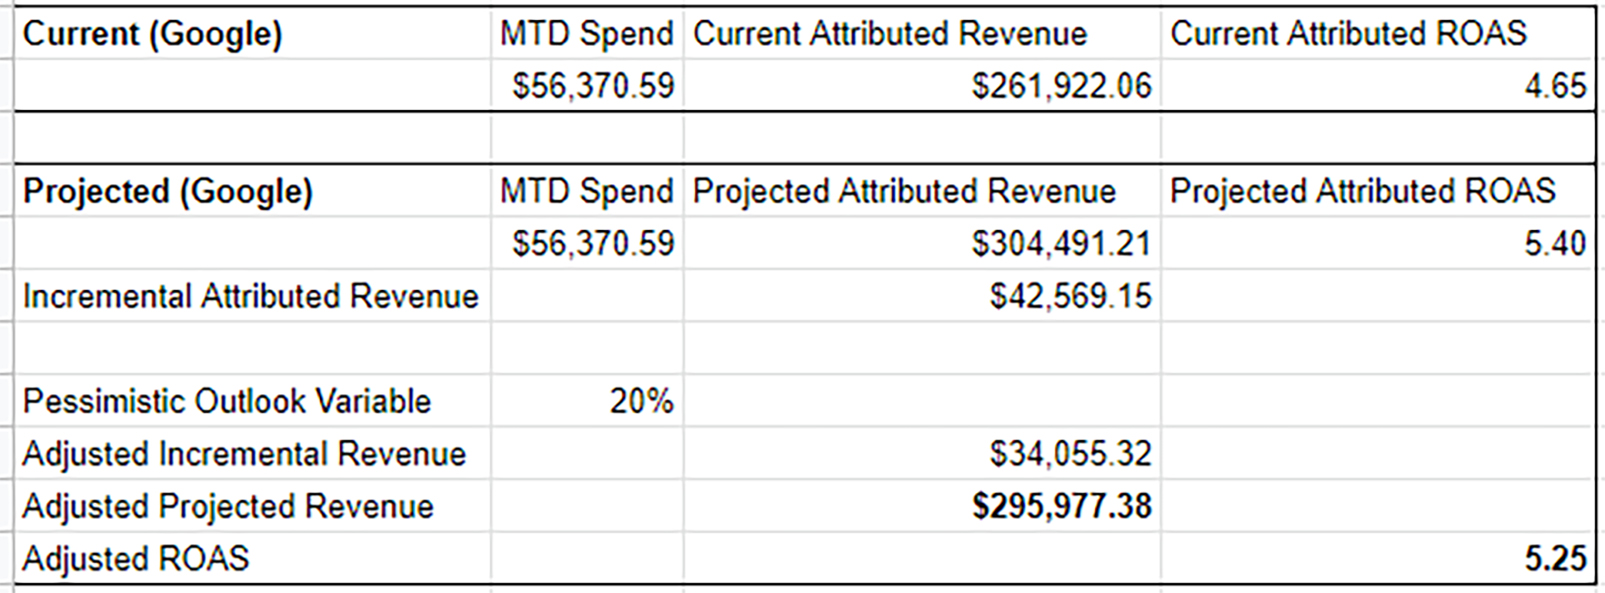 Adjusted Revenue Based on Time Lag Projections